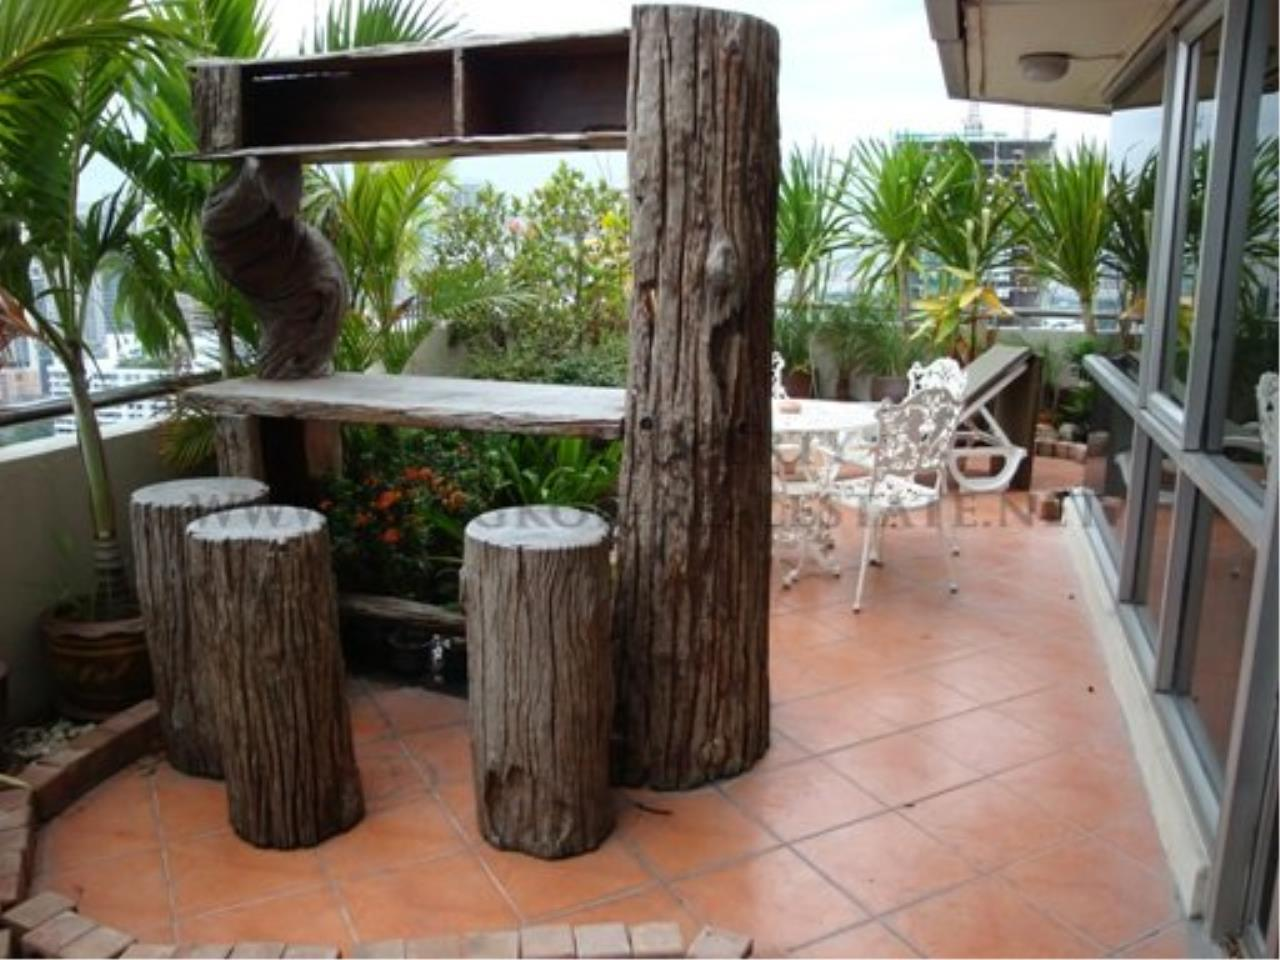 Piri Property Agency's 2 Bedroom Condo with great Outdoor Terrace of 40 SQM - Just a 5 minute walk to the BTS 7